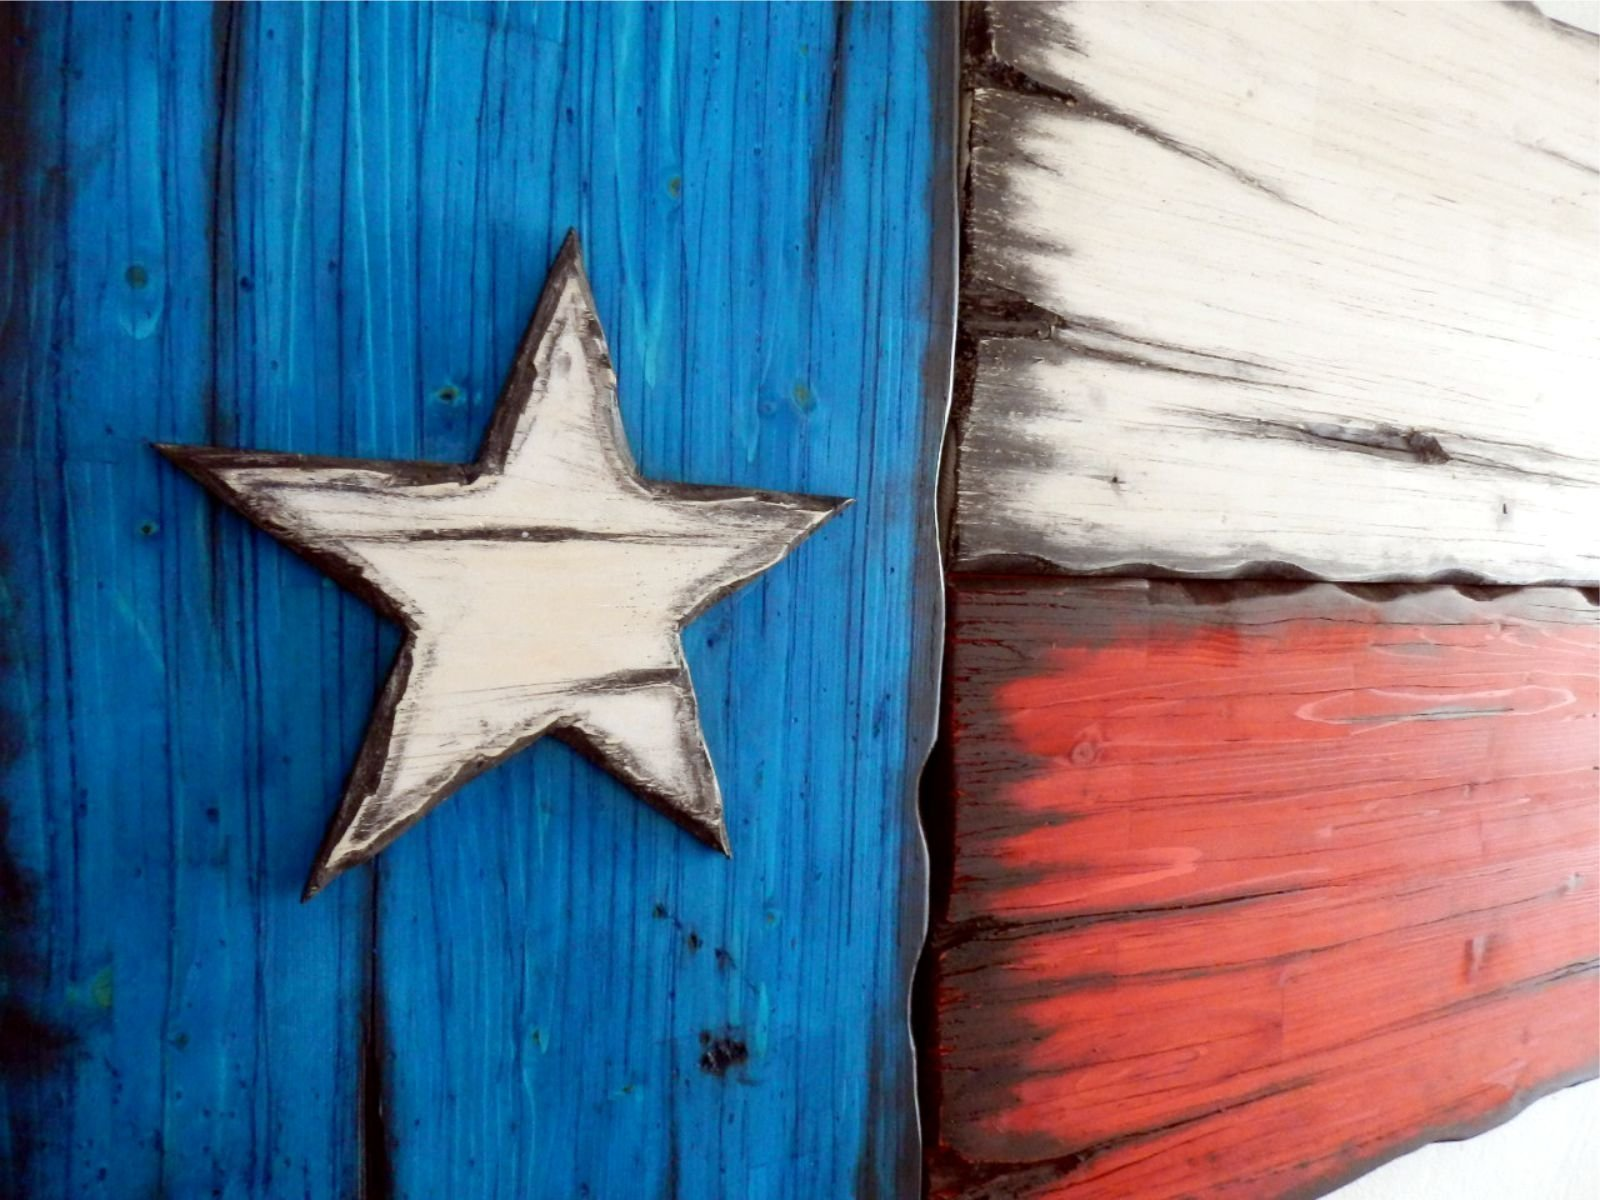 Texas Flag | Rustic decor | Τexas decor | Distressed Wood Flag | Texas wall decor | Optional customization by adding an engraved plaque